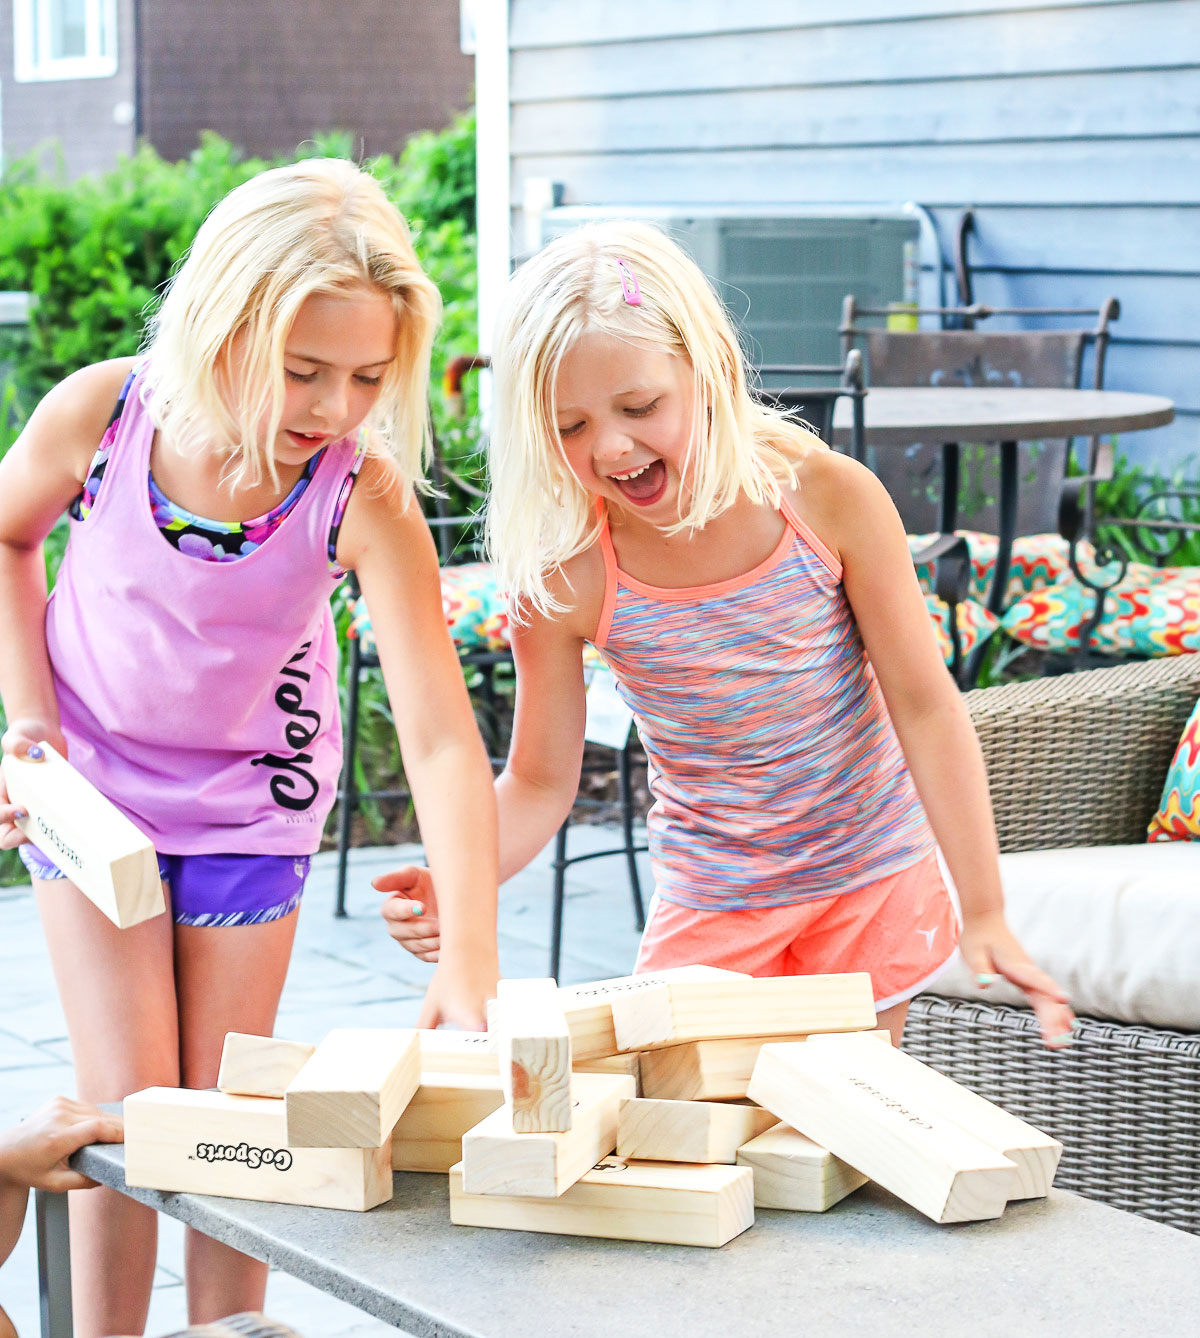 It's officially summer and fun outdoor games are on rotation to keep the kids busy and off devices. Am I the only mom struggling??